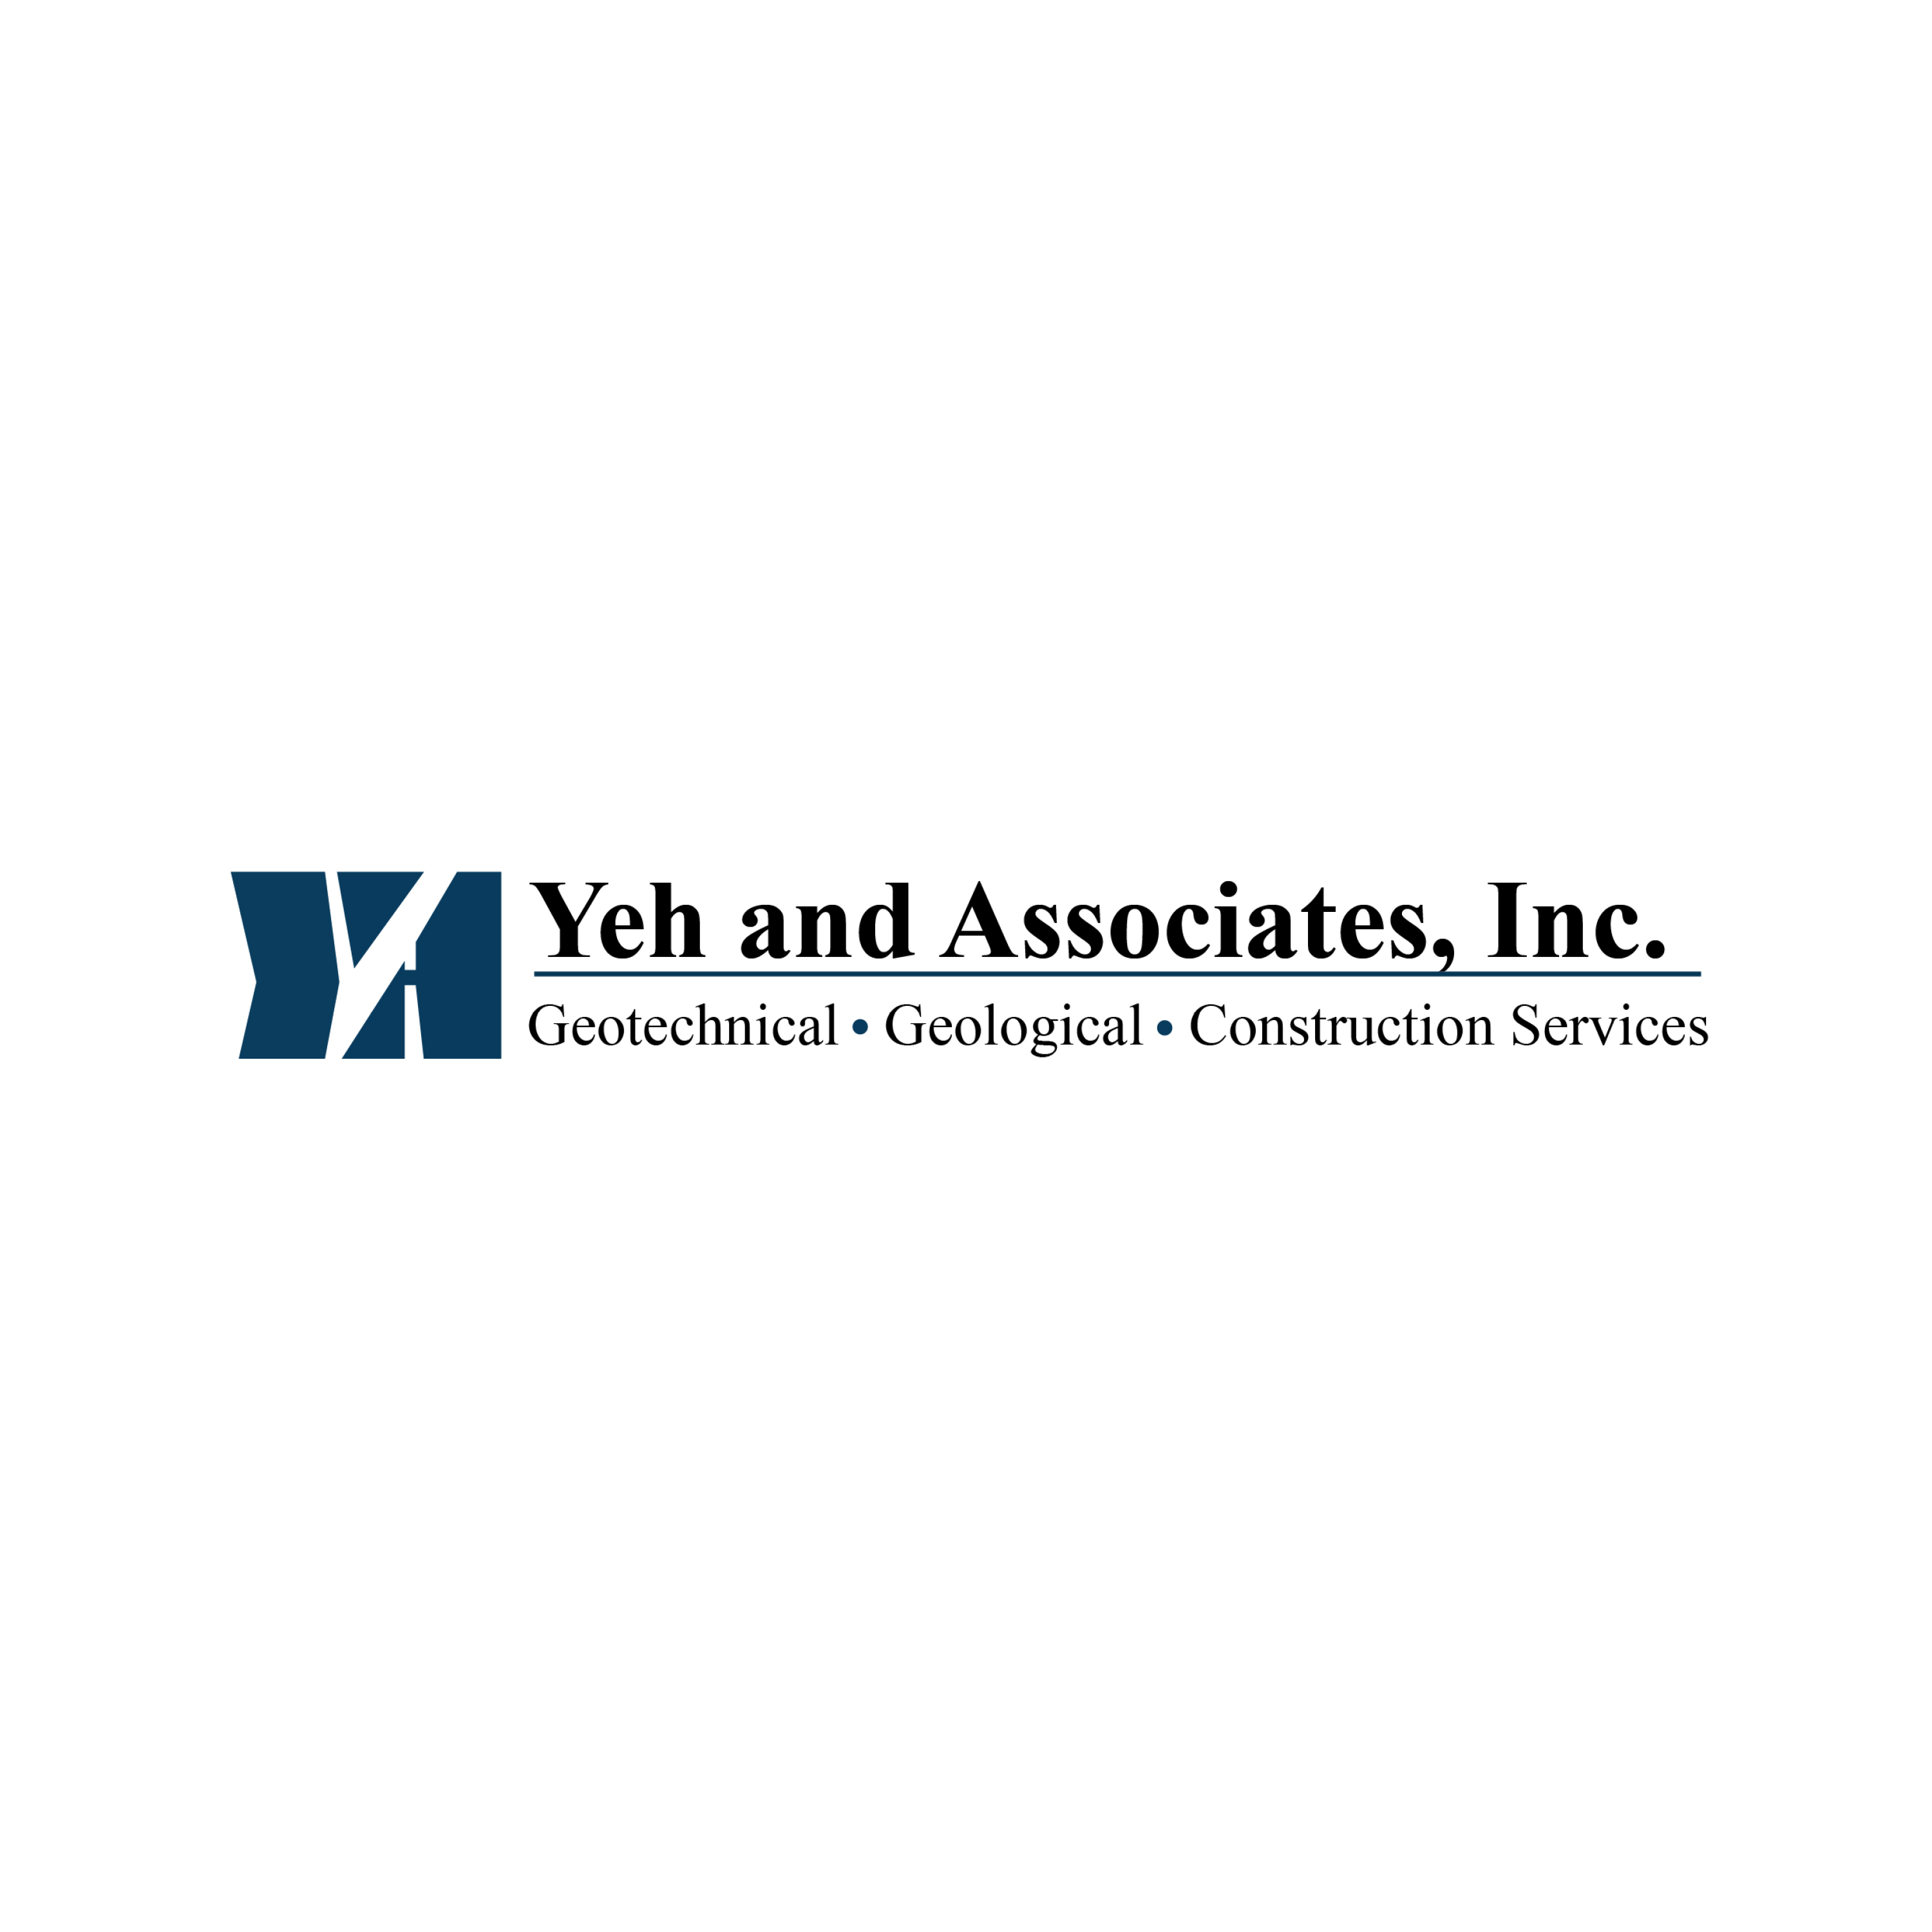 Yeh and Associates, Inc.